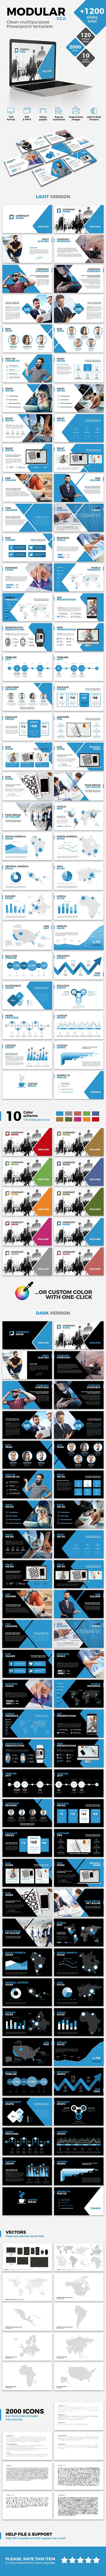 MODULAR / Modern and clean multipurpose professional Powerpoint template - PowerPoint Templates Presentation Templates